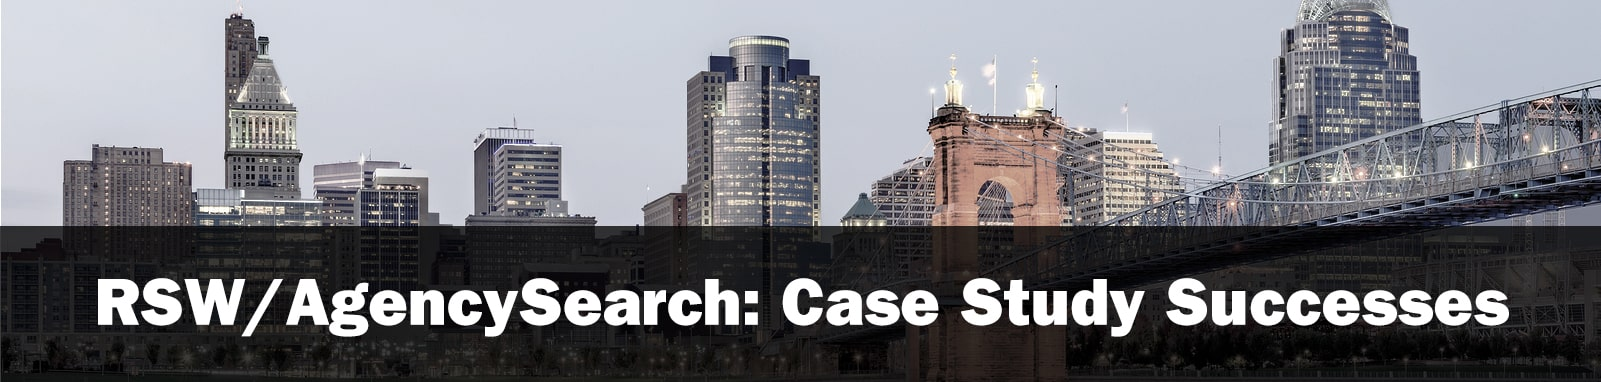 RSW/Agency Search: Case Study Successes